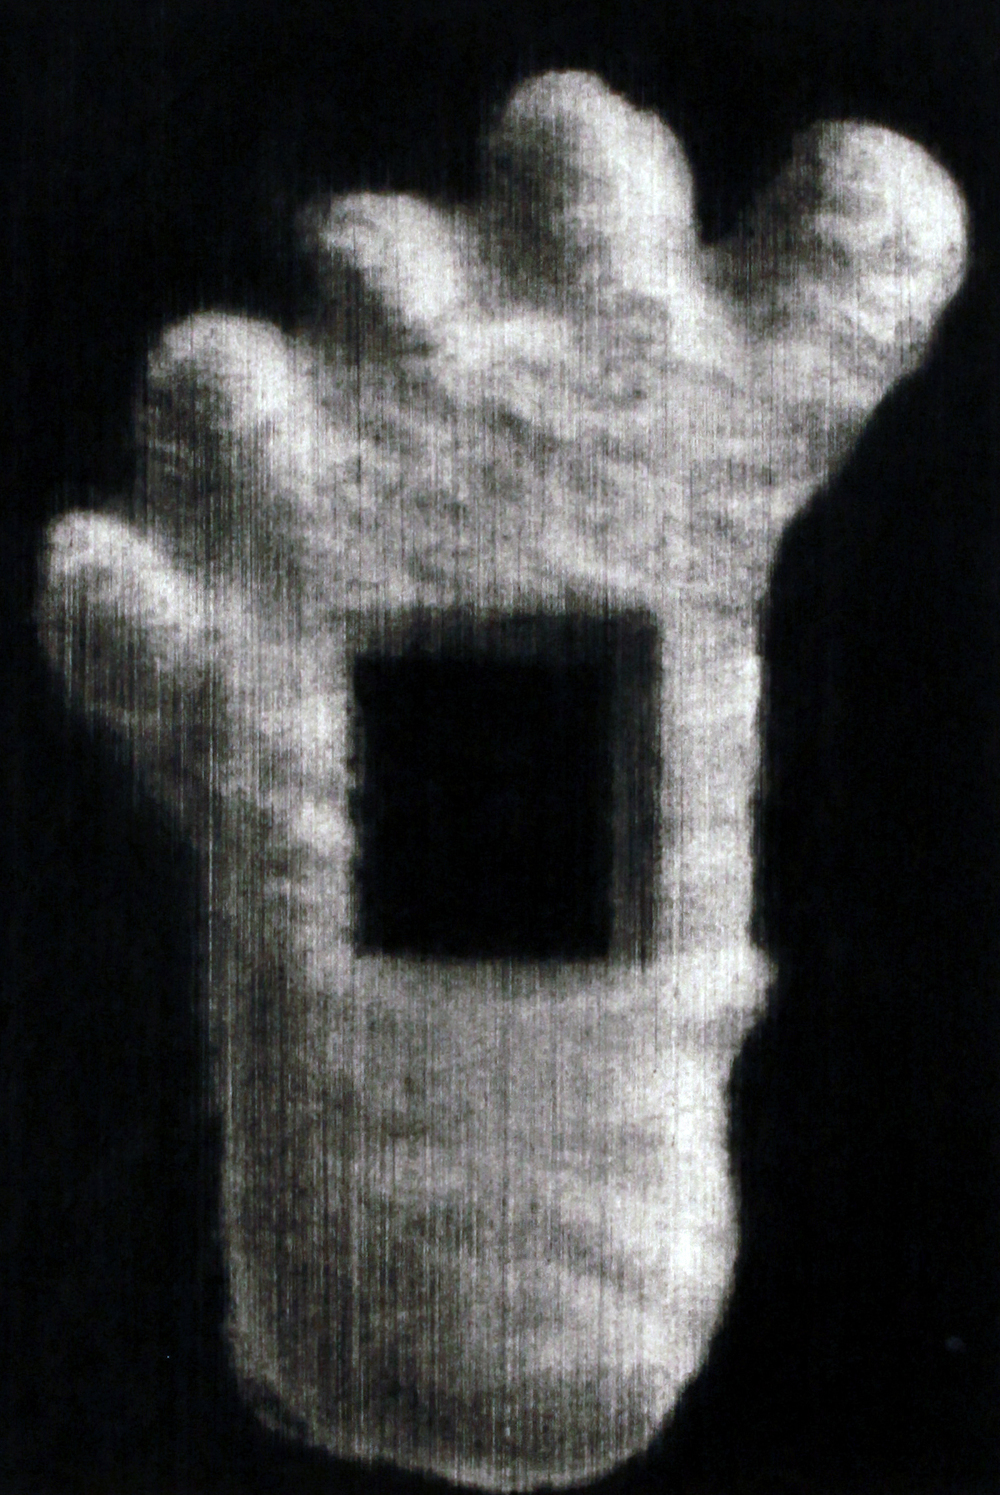 Plug II . 2014/15. charcoal on paper. 82x67cm